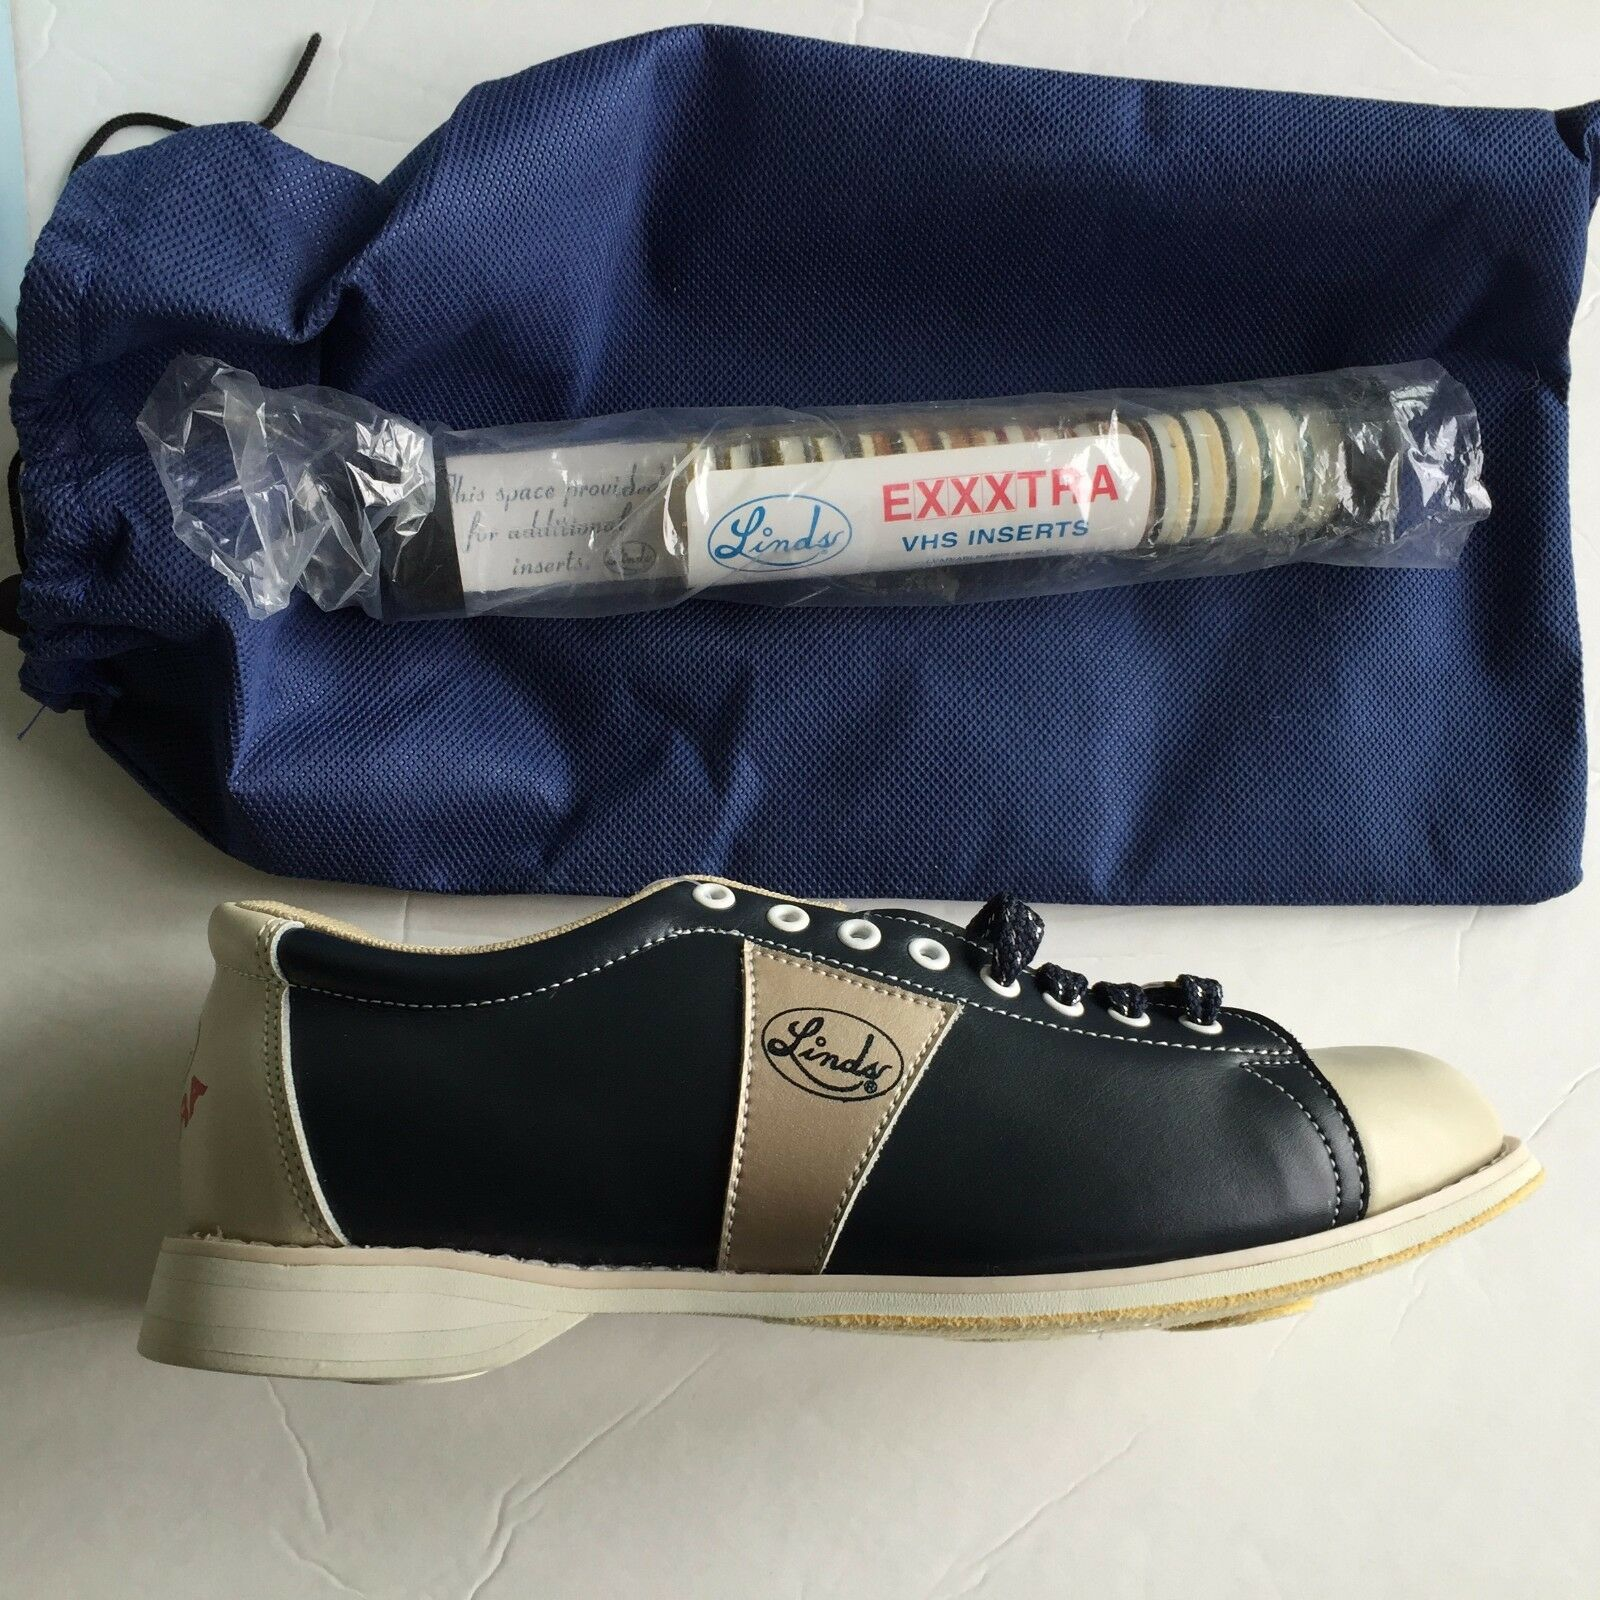 Linds Men's CLASSIC EXXXTRA NAVY CREAM  LH  Bowling shoes size  5  NEW IN BOX